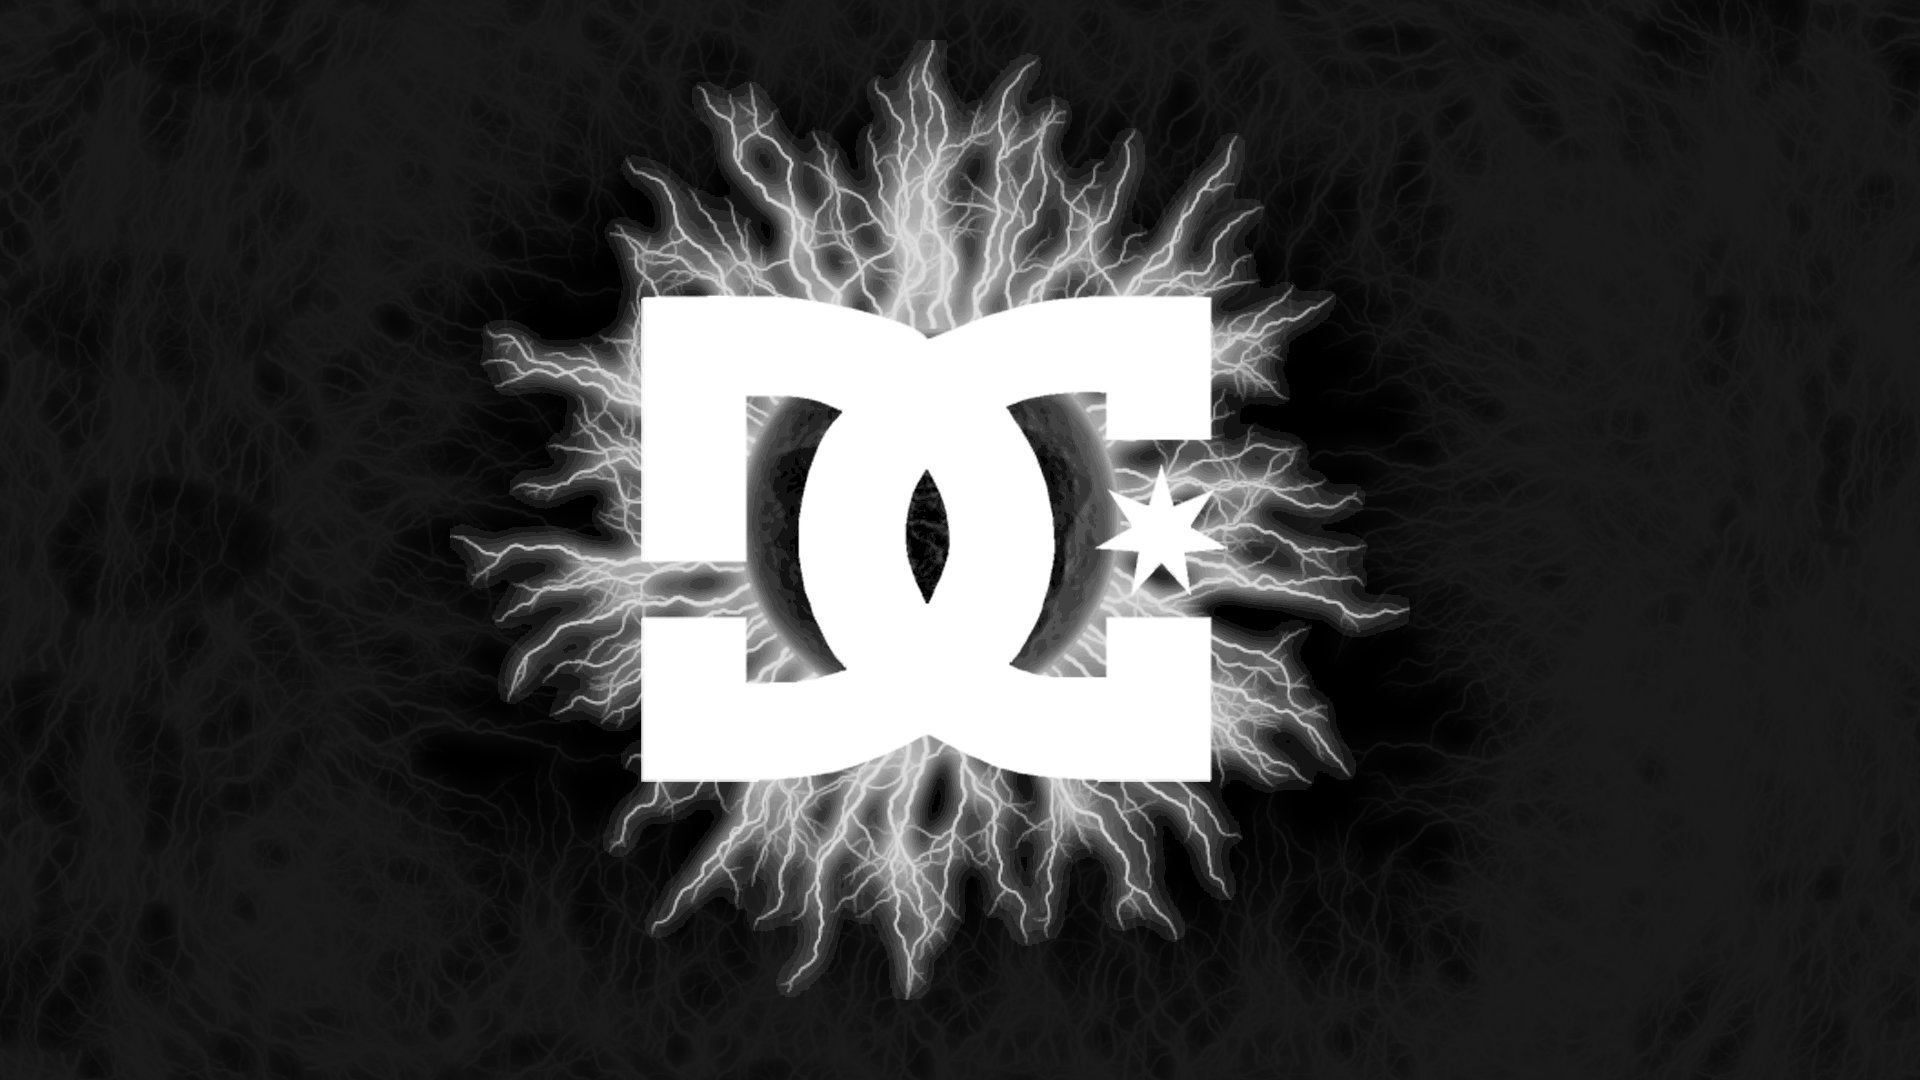 Dc Shoes Wallpapers Hd For Desktop Backgrounds